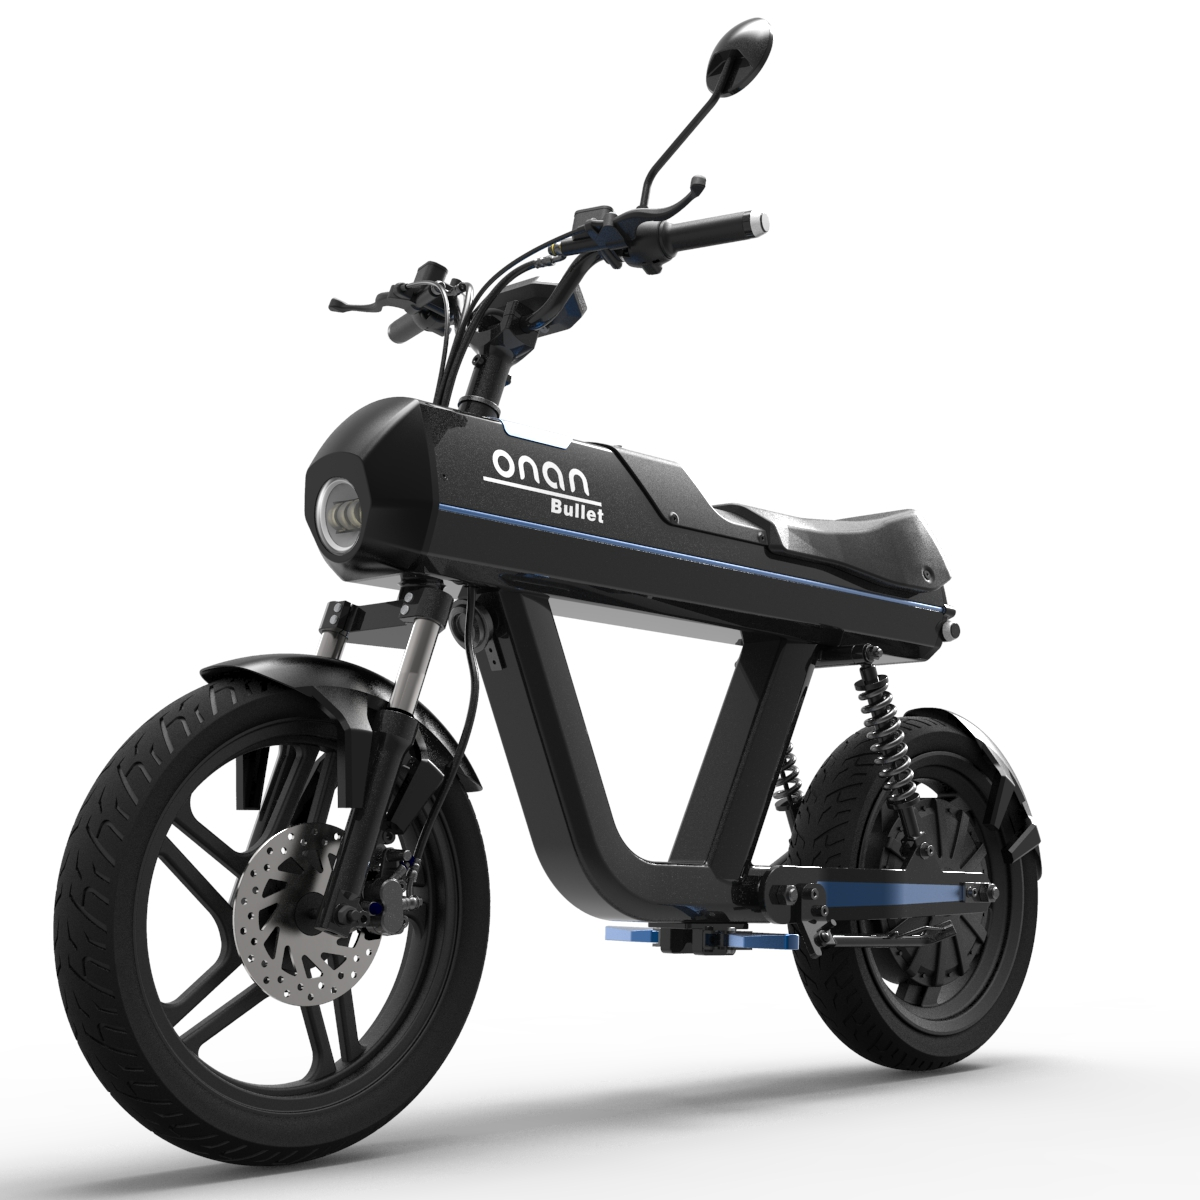 ONAN 100 KM/H Max Speed Electric bicycle Motorcycle For Sale